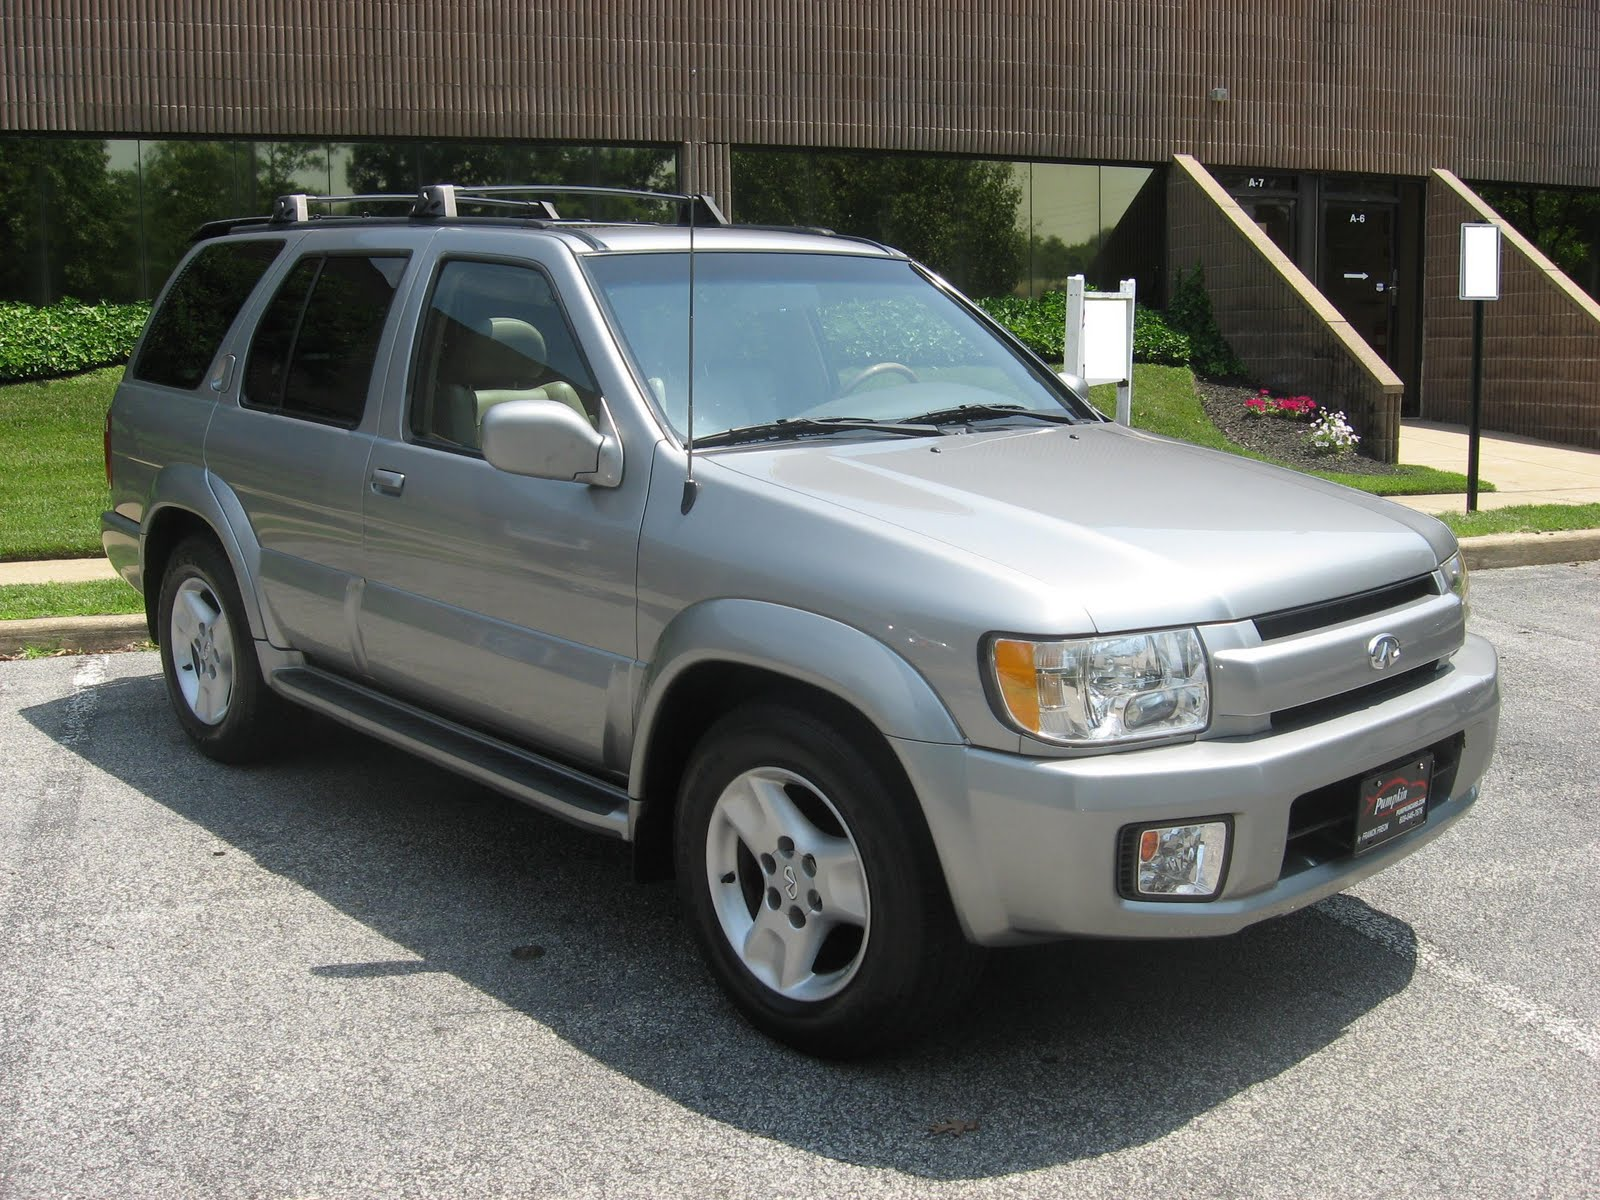 Pristine 2001 infiniti qx4 luxury suv with all wheel drive this qx4